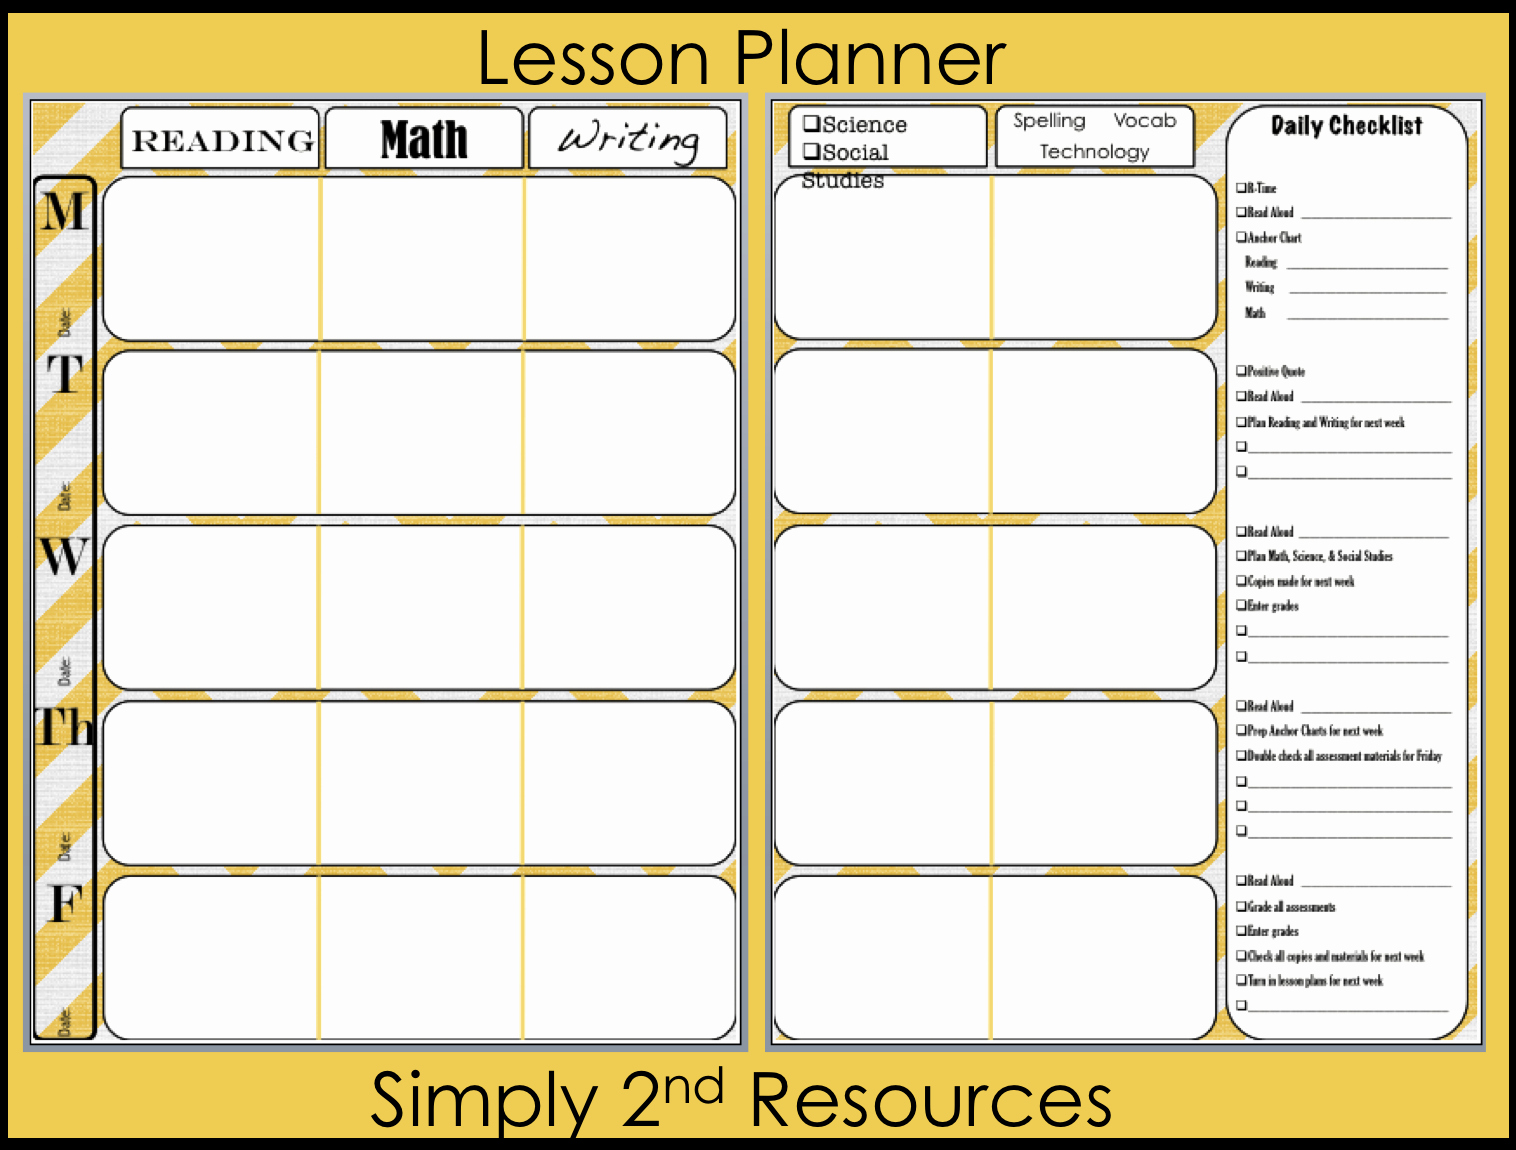 Free Weekly Lesson Plan Template Best Of Simply 2nd Resources Lesson Plan Template so Excited to